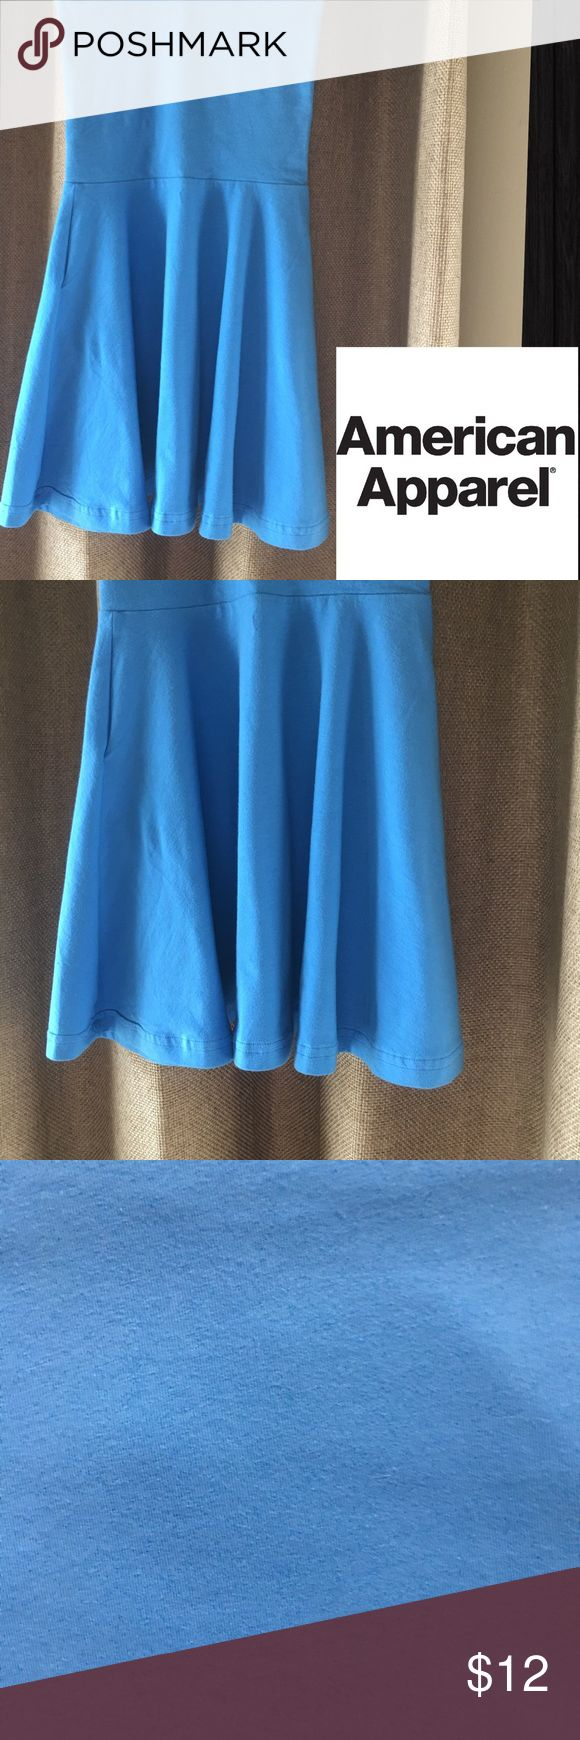 American Apparel Blue Mini Dress or Skirt Sz XS Please refer to my purple dress for description. This is a Sz XS and in color is cornflower blue. American Apparel Dresses Strapless